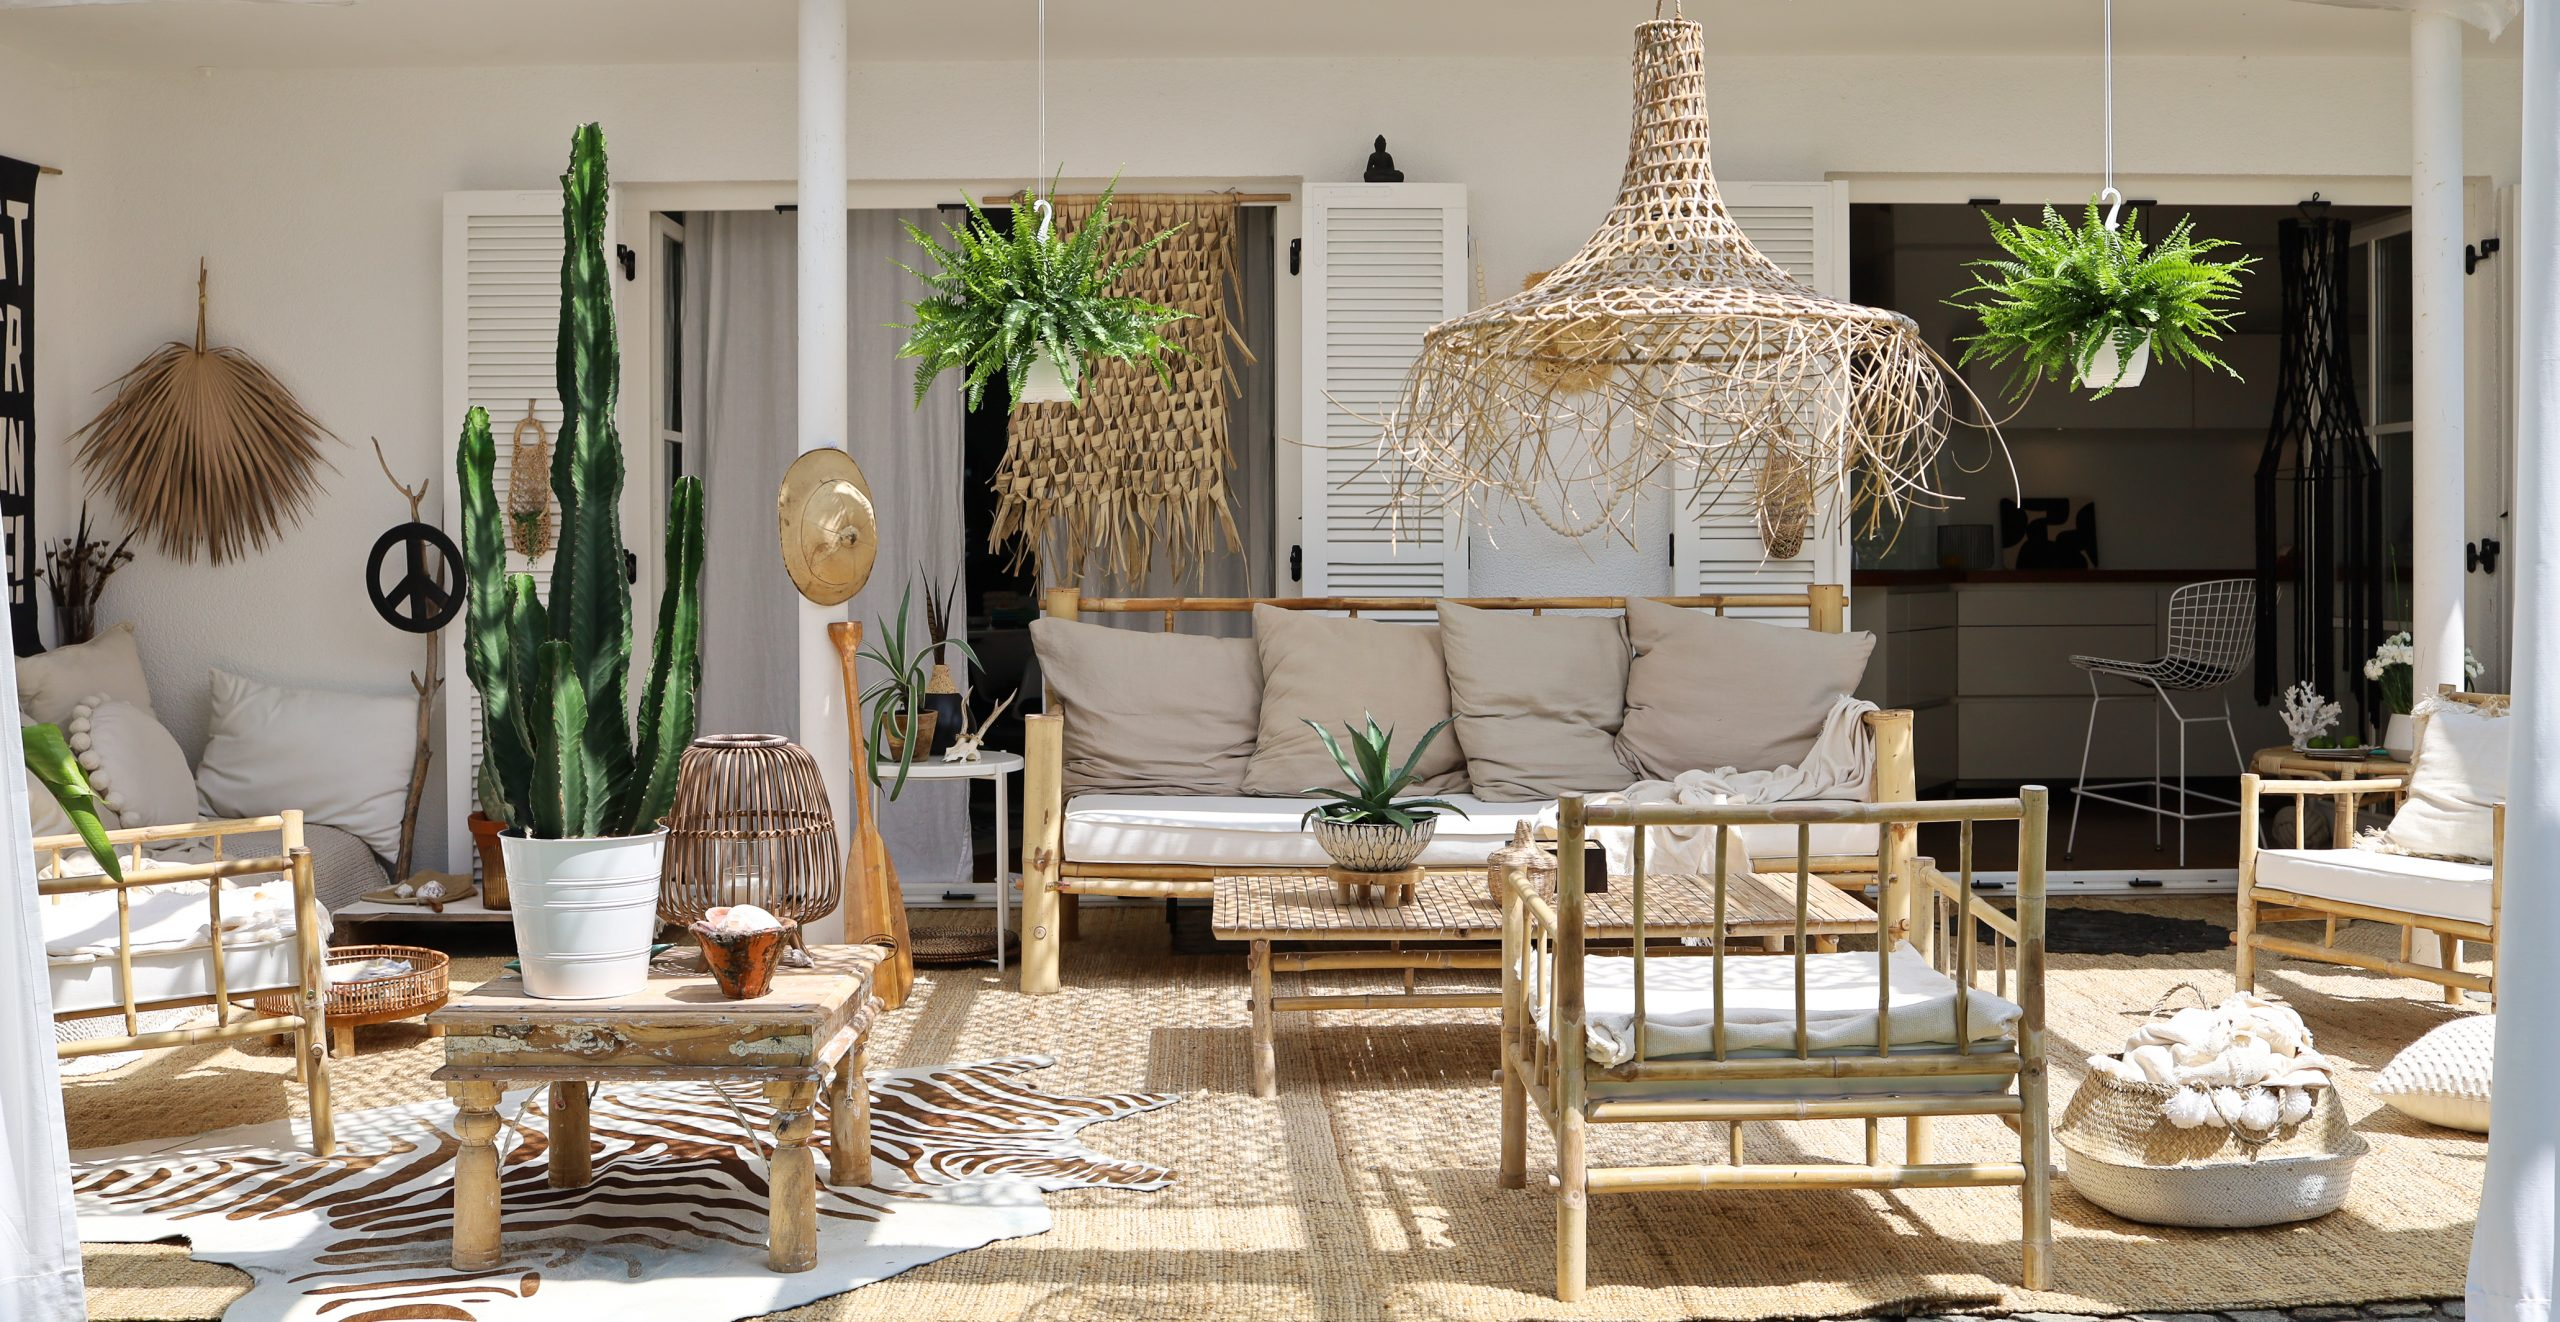 Boho Outdoorlounge